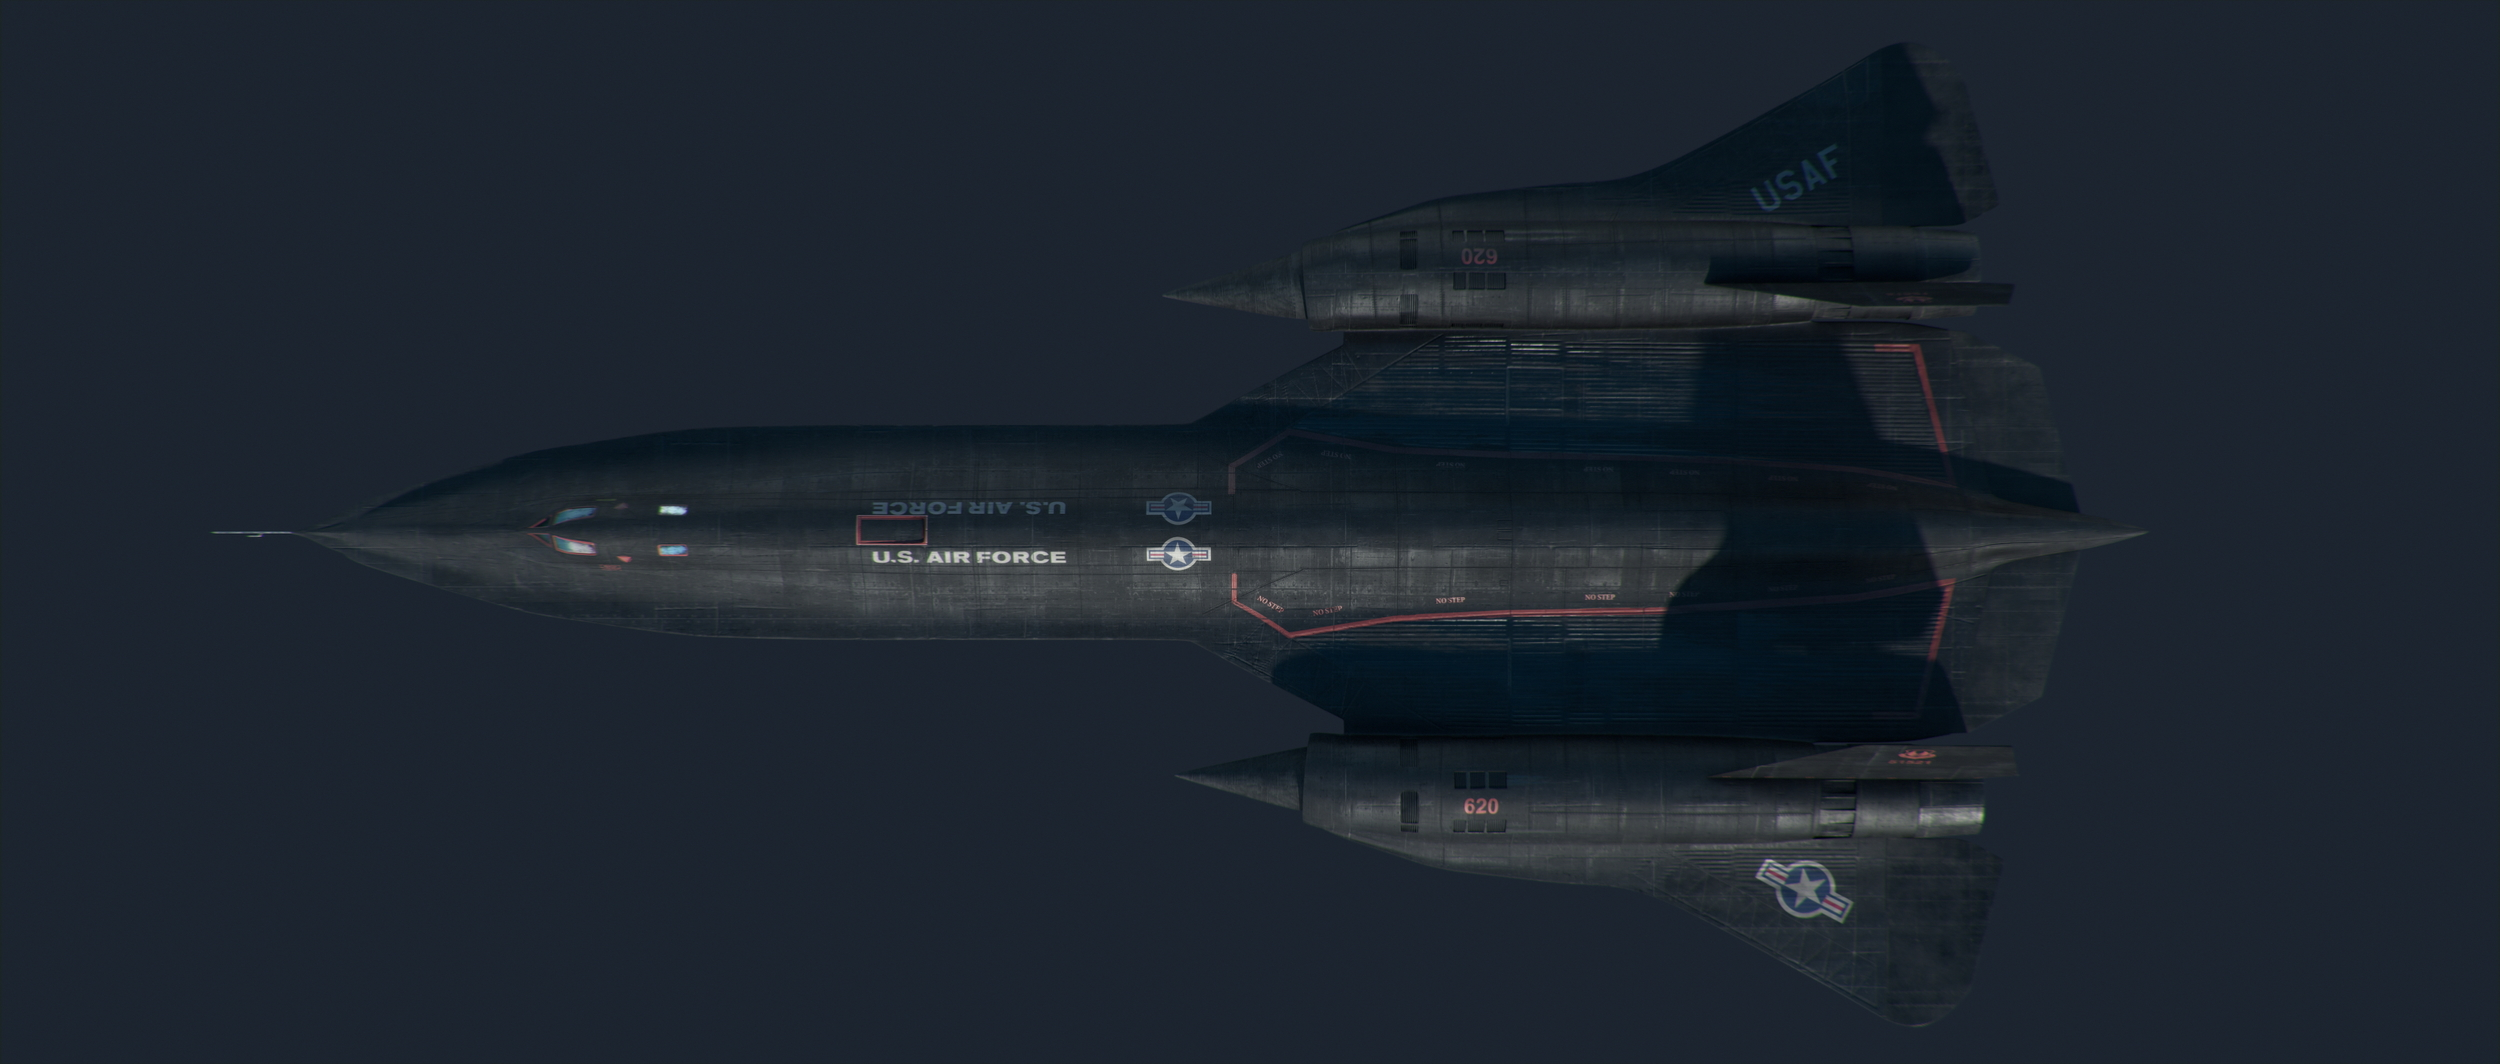 SR-71 - Modeling. Modeled in Maya. Textured by Clint Rea